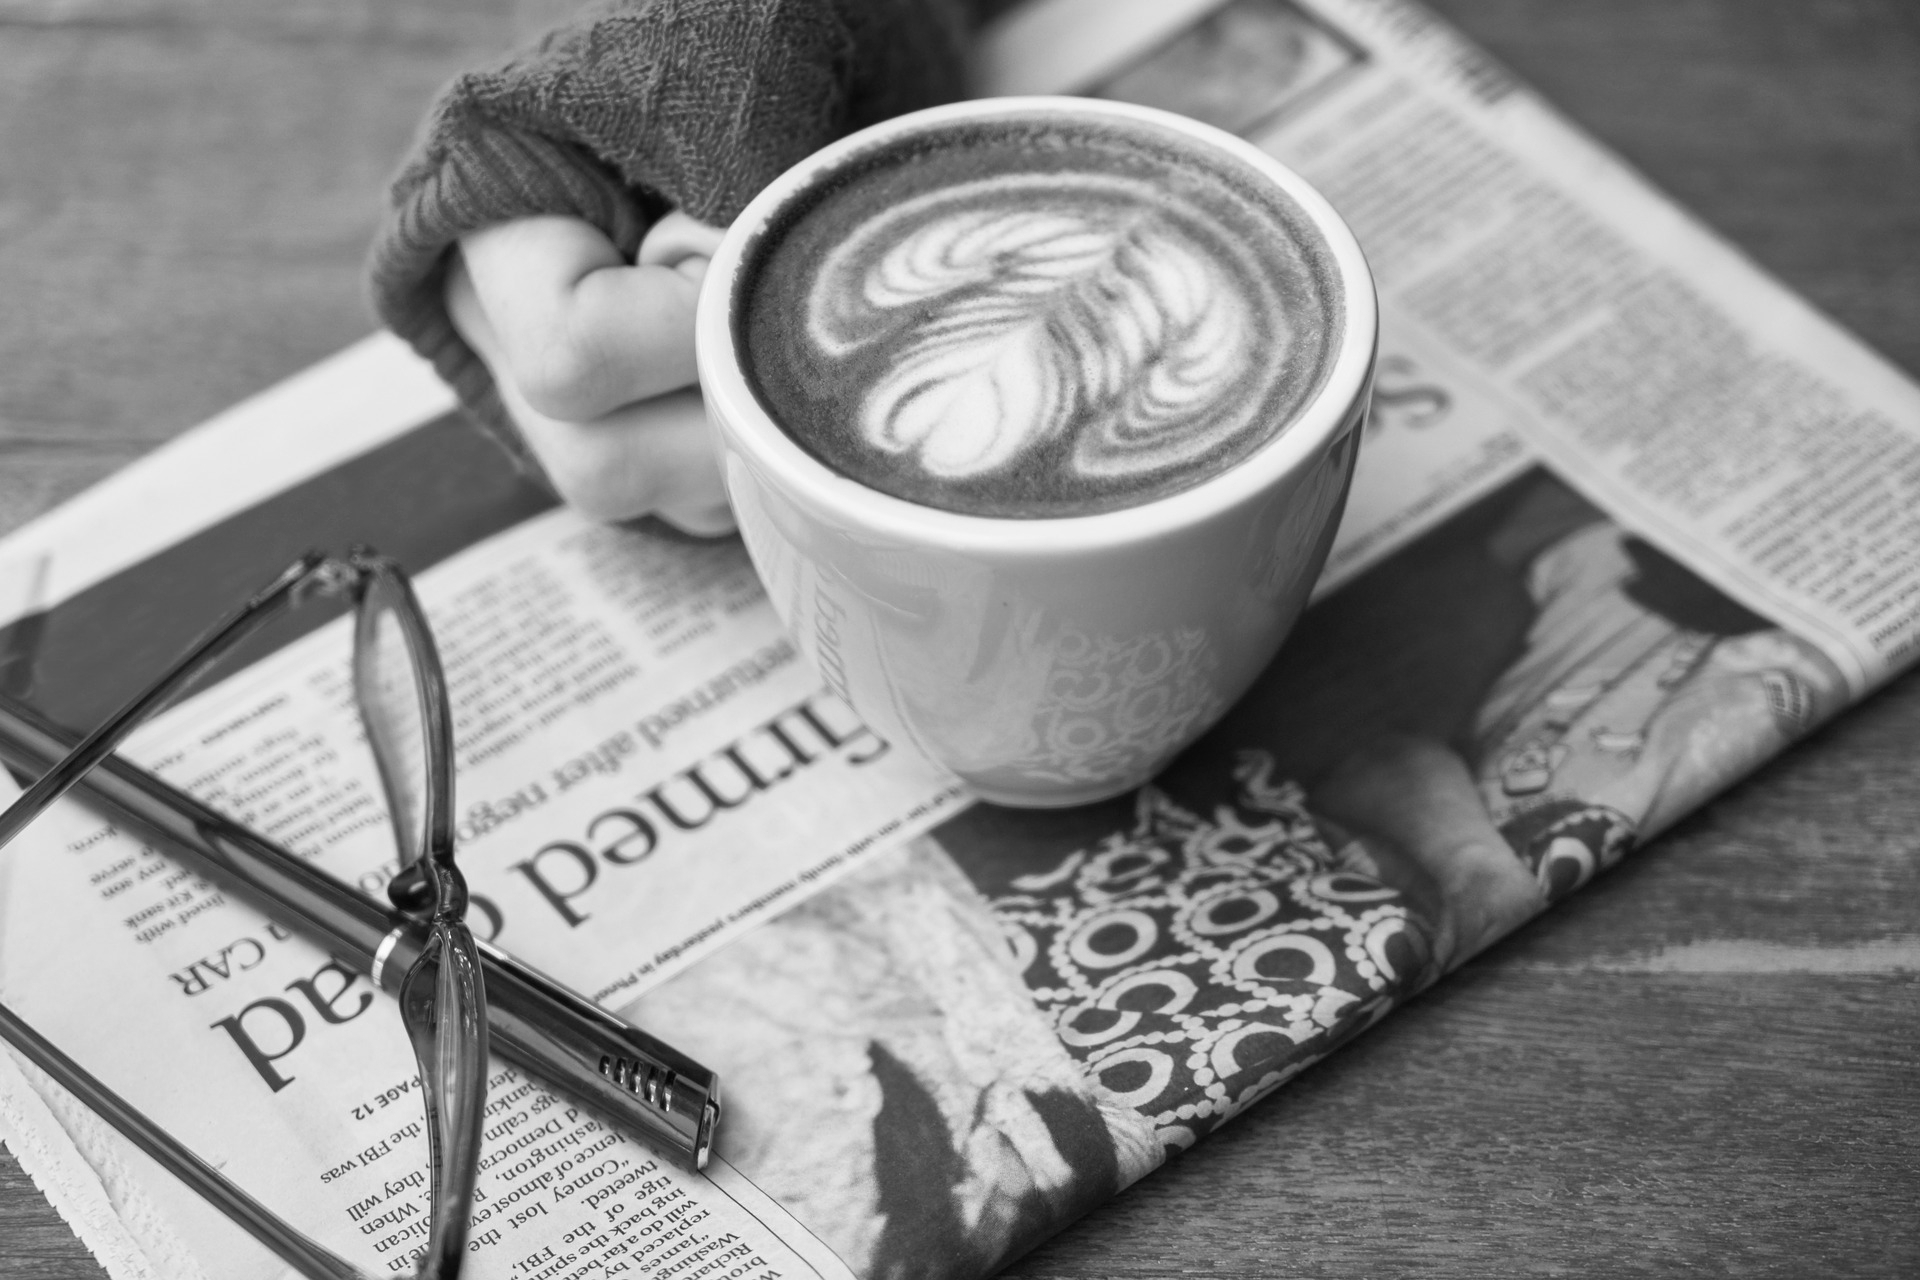 A hand holds a latte resting atop a newspaper